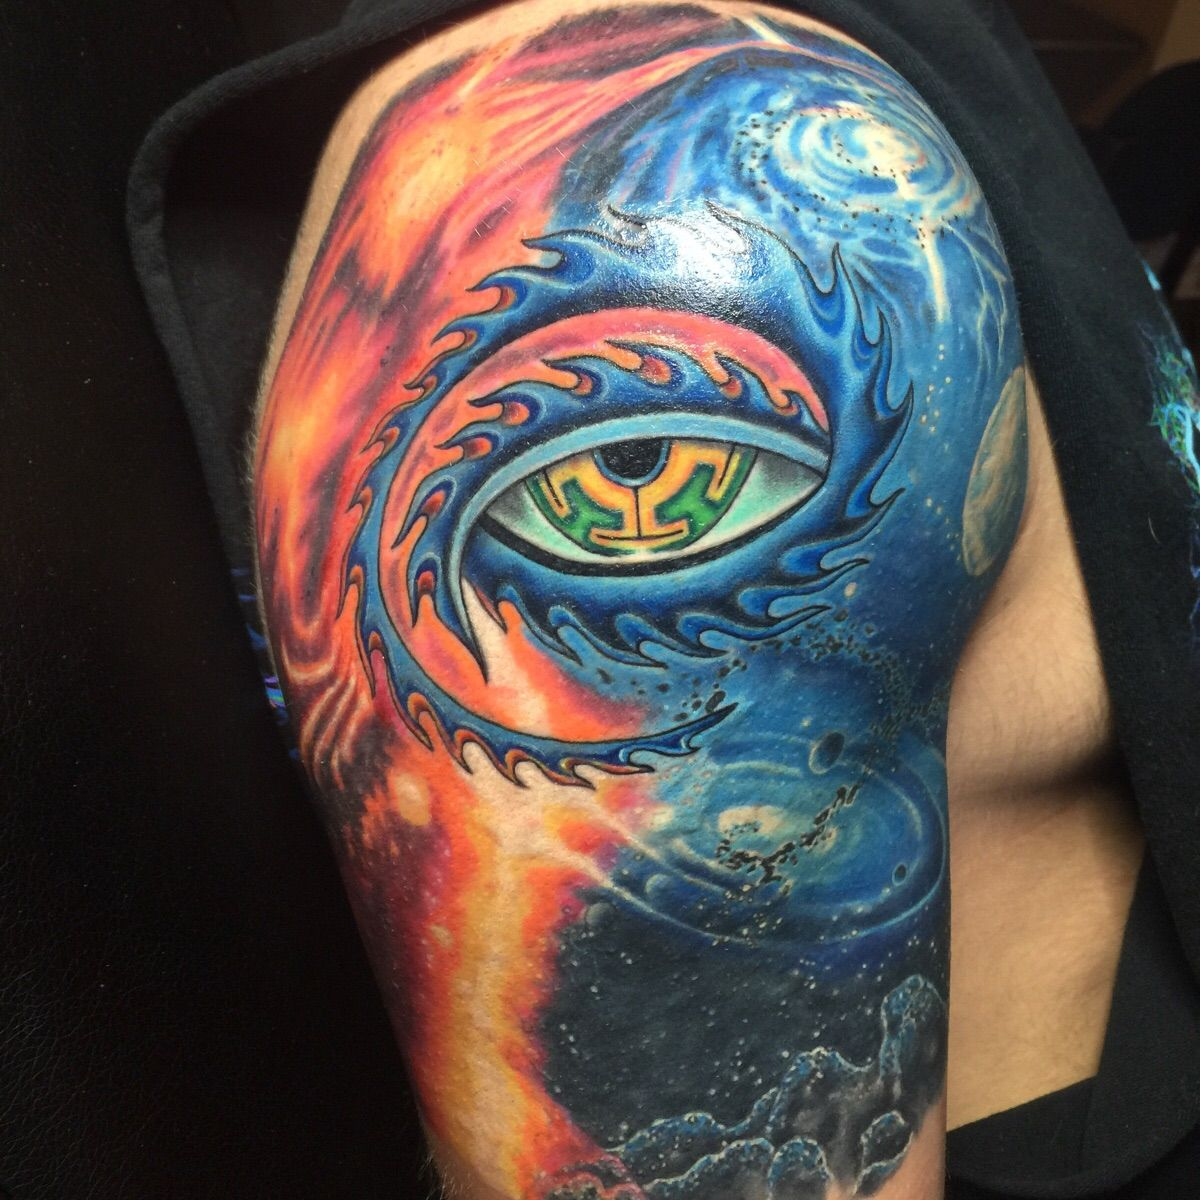 [Update] Tool inspired tattoo is finally done (20 hours